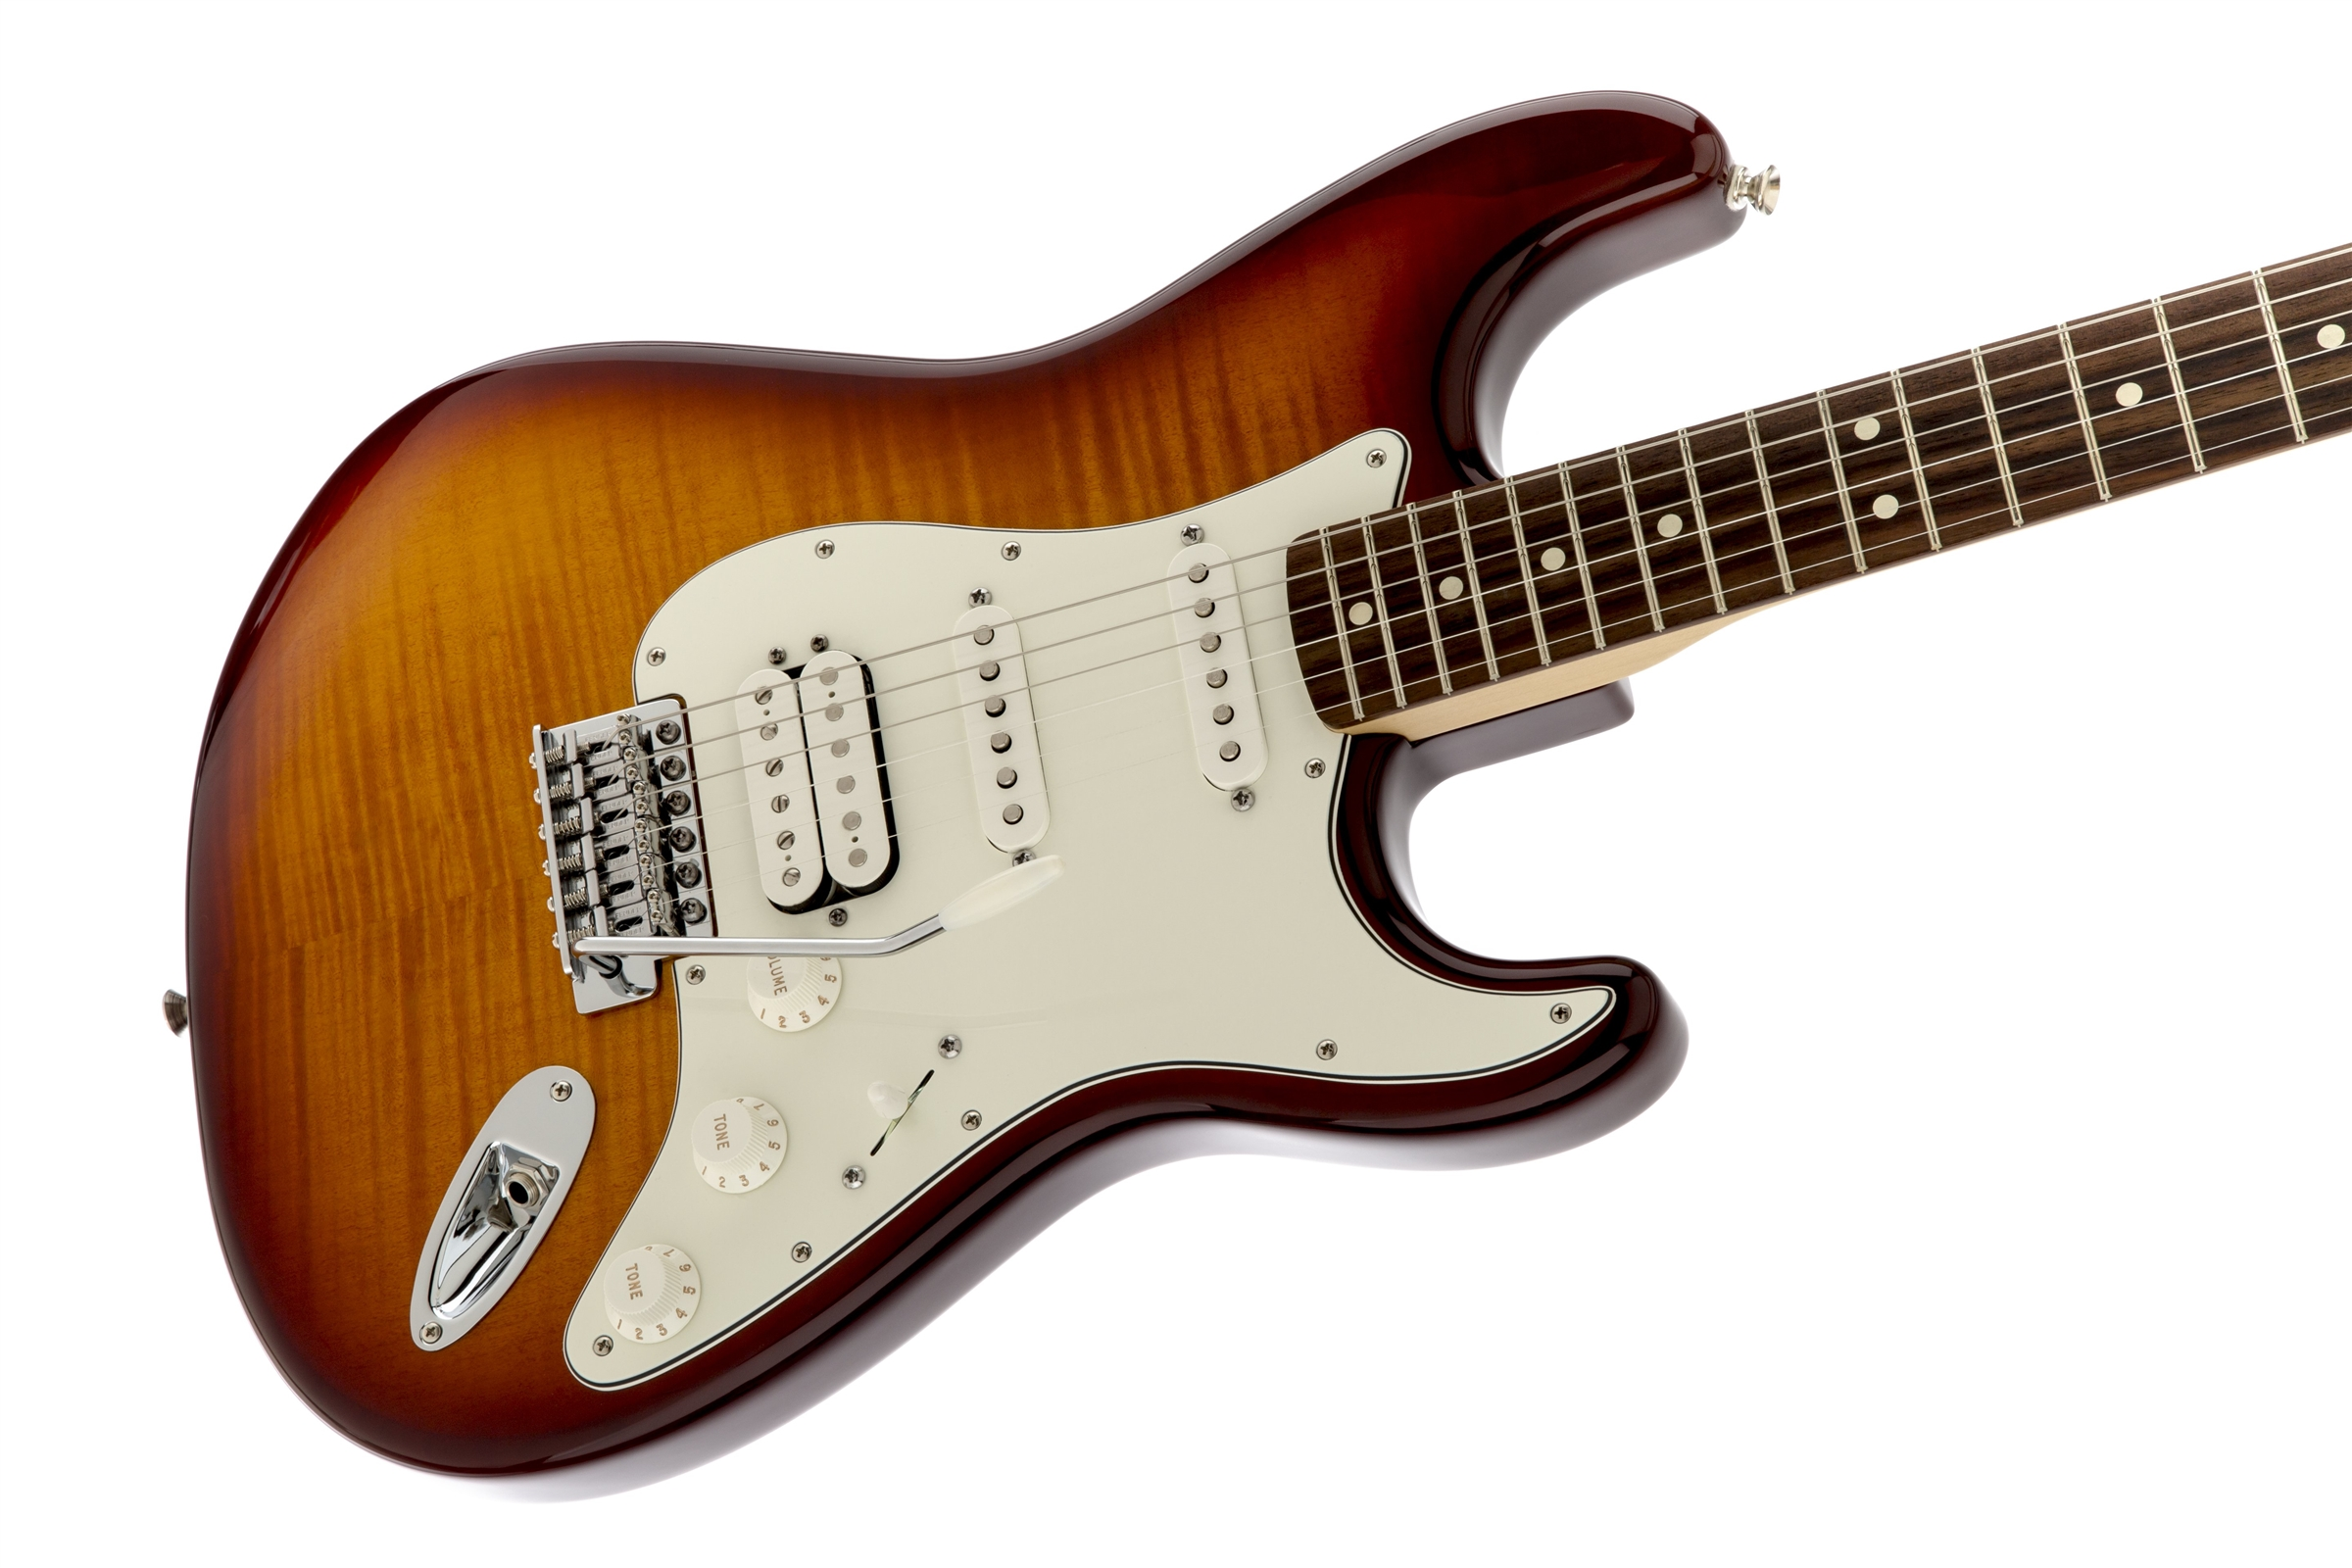 fender standard stratocaster hss plus top pau ferro fingerboard tobacco sunburst. Black Bedroom Furniture Sets. Home Design Ideas